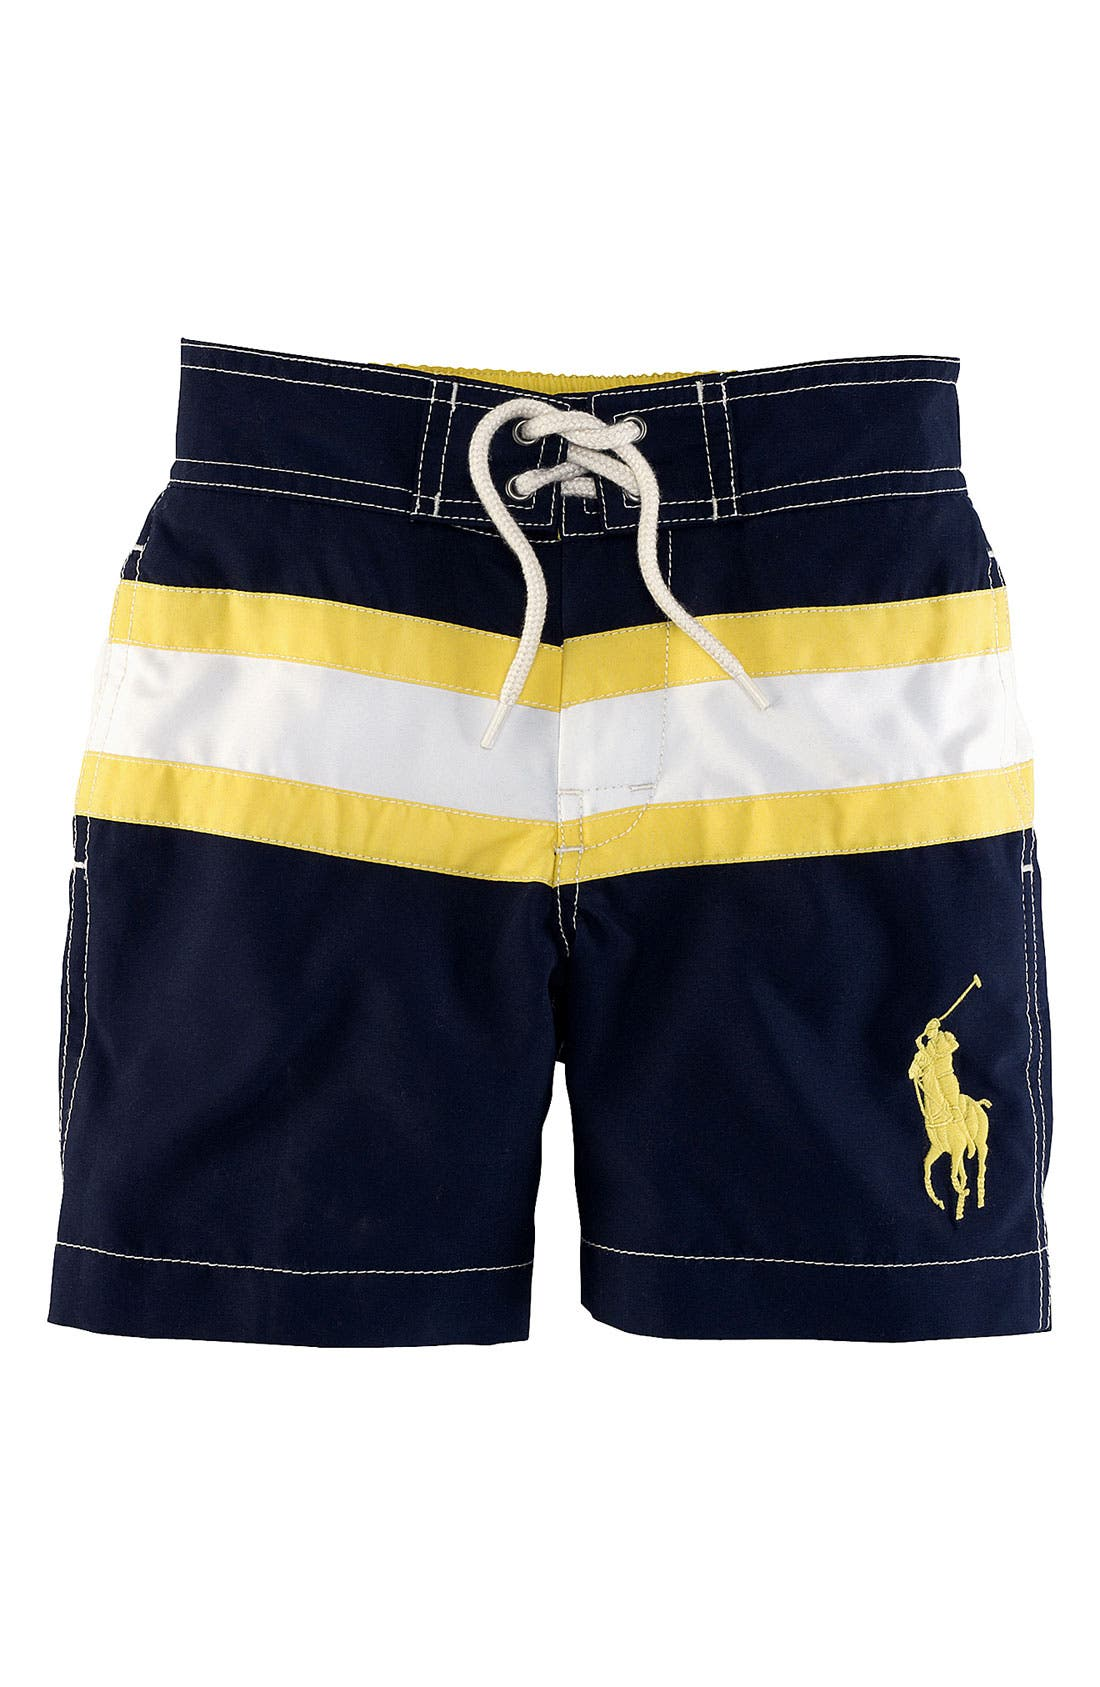 Alternate Image 1 Selected - Ralph Lauren Swim Trunks (Toddler)